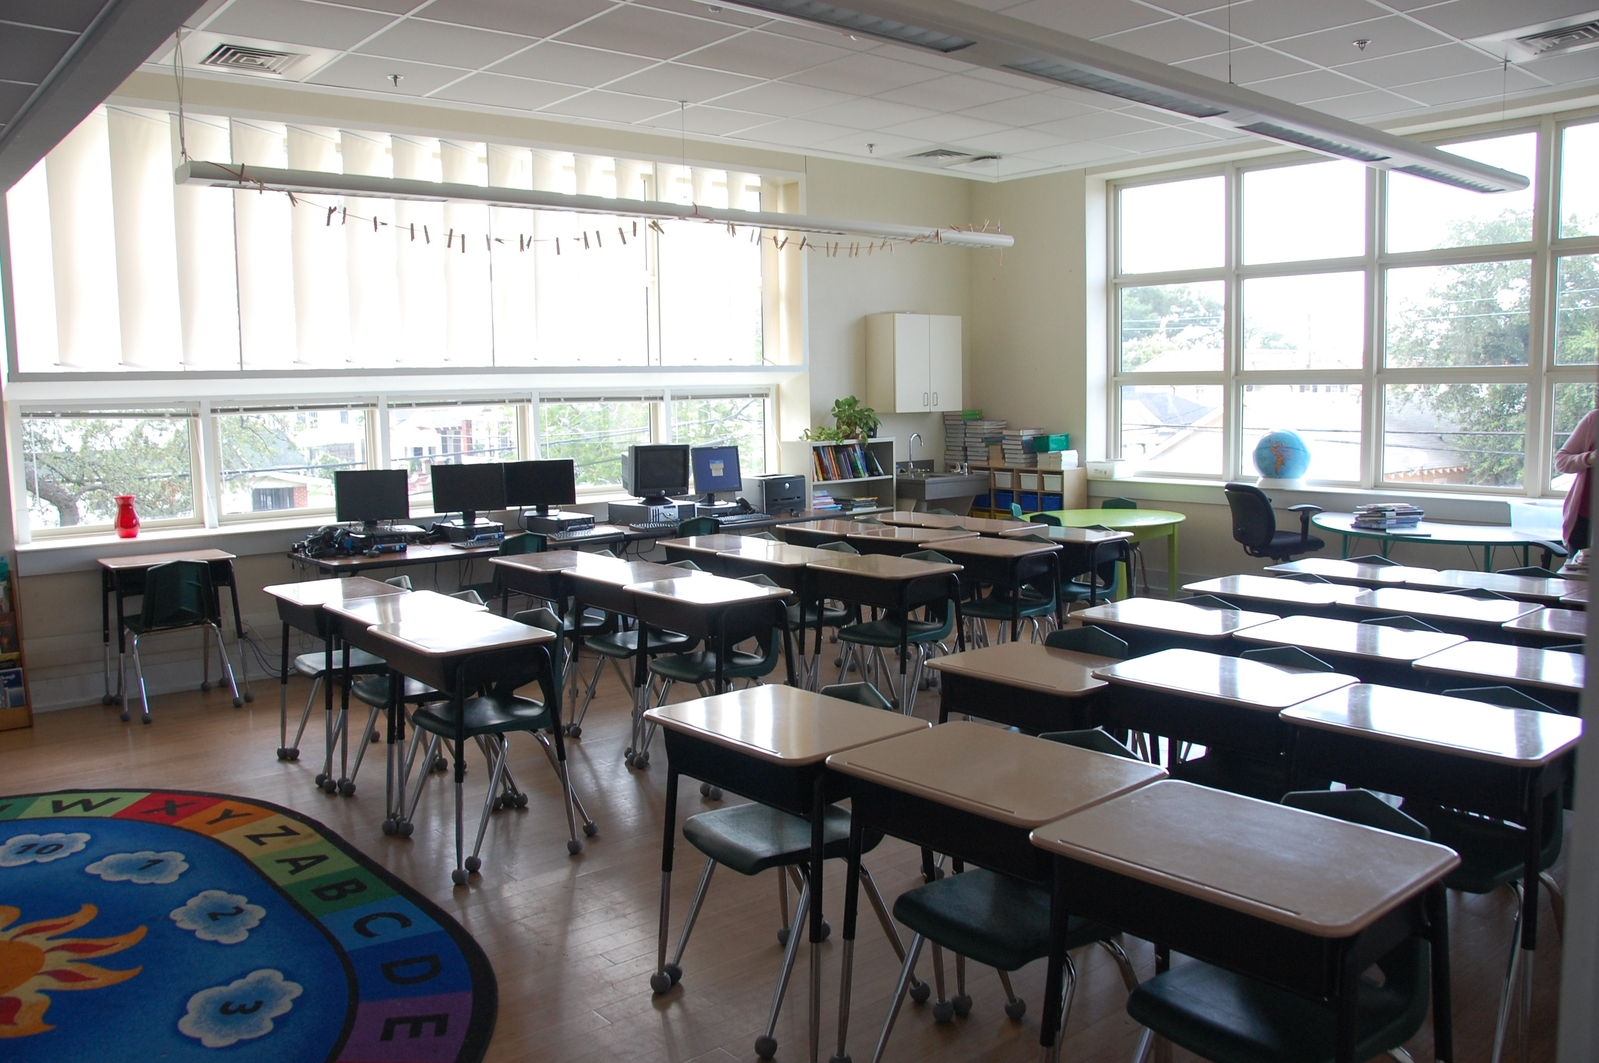 Andrew Wilson Elementary School Uses Fixed Blinds In Classrooms